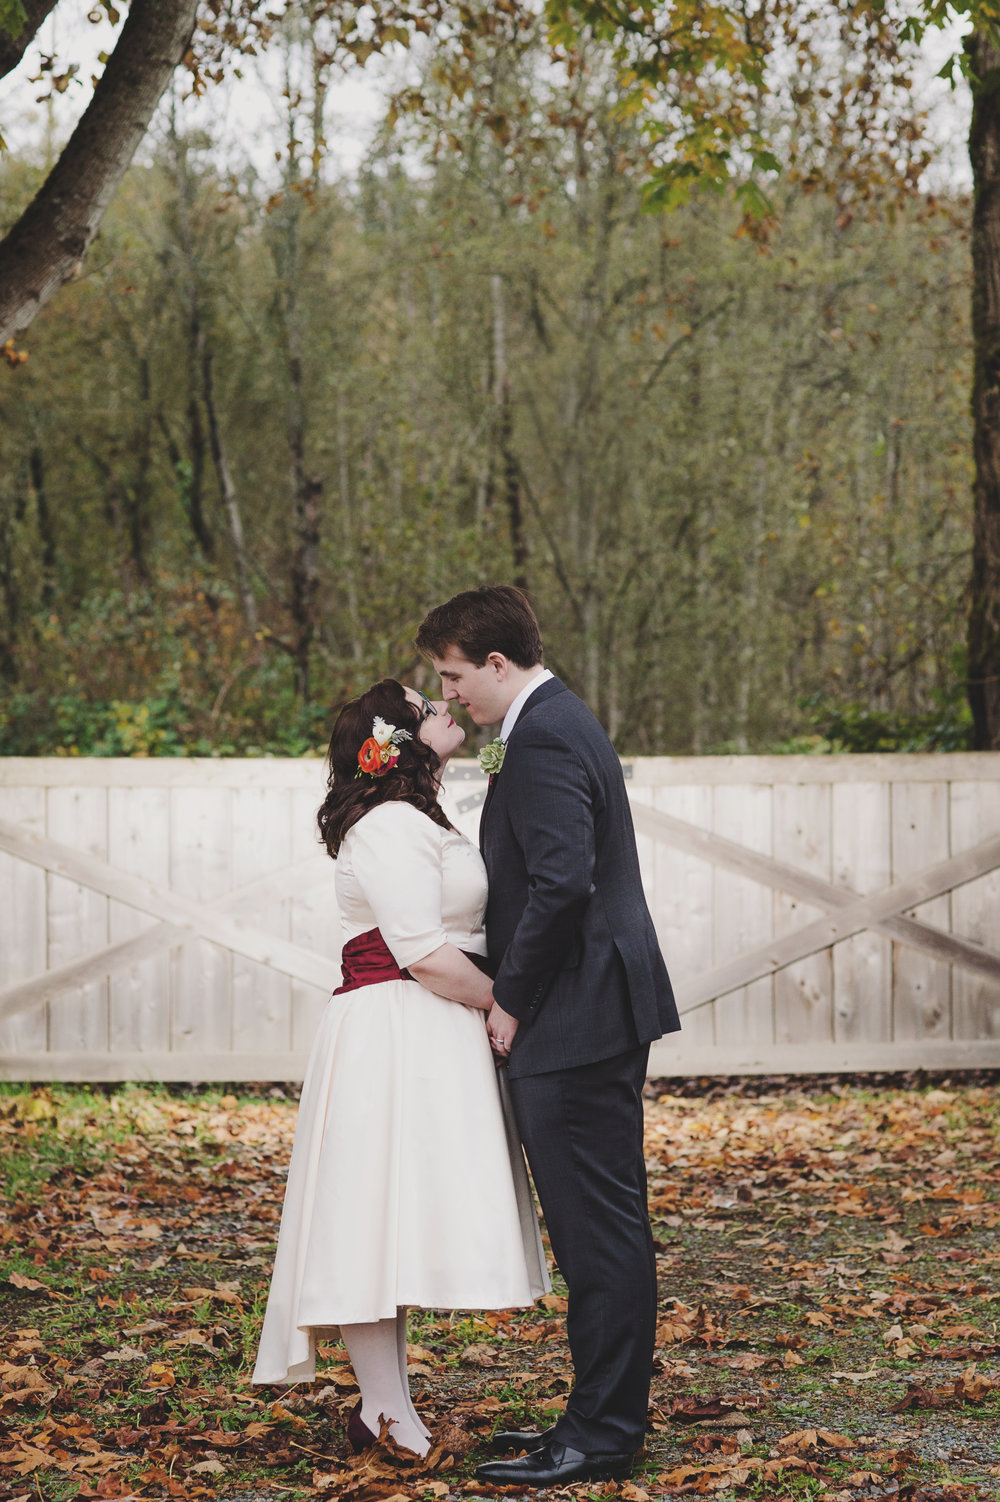 Rini Didier + Matt MacIsaac Wedding_Lodge at Falls City Wedding_Kelsey Lane Photography-0097.jpg